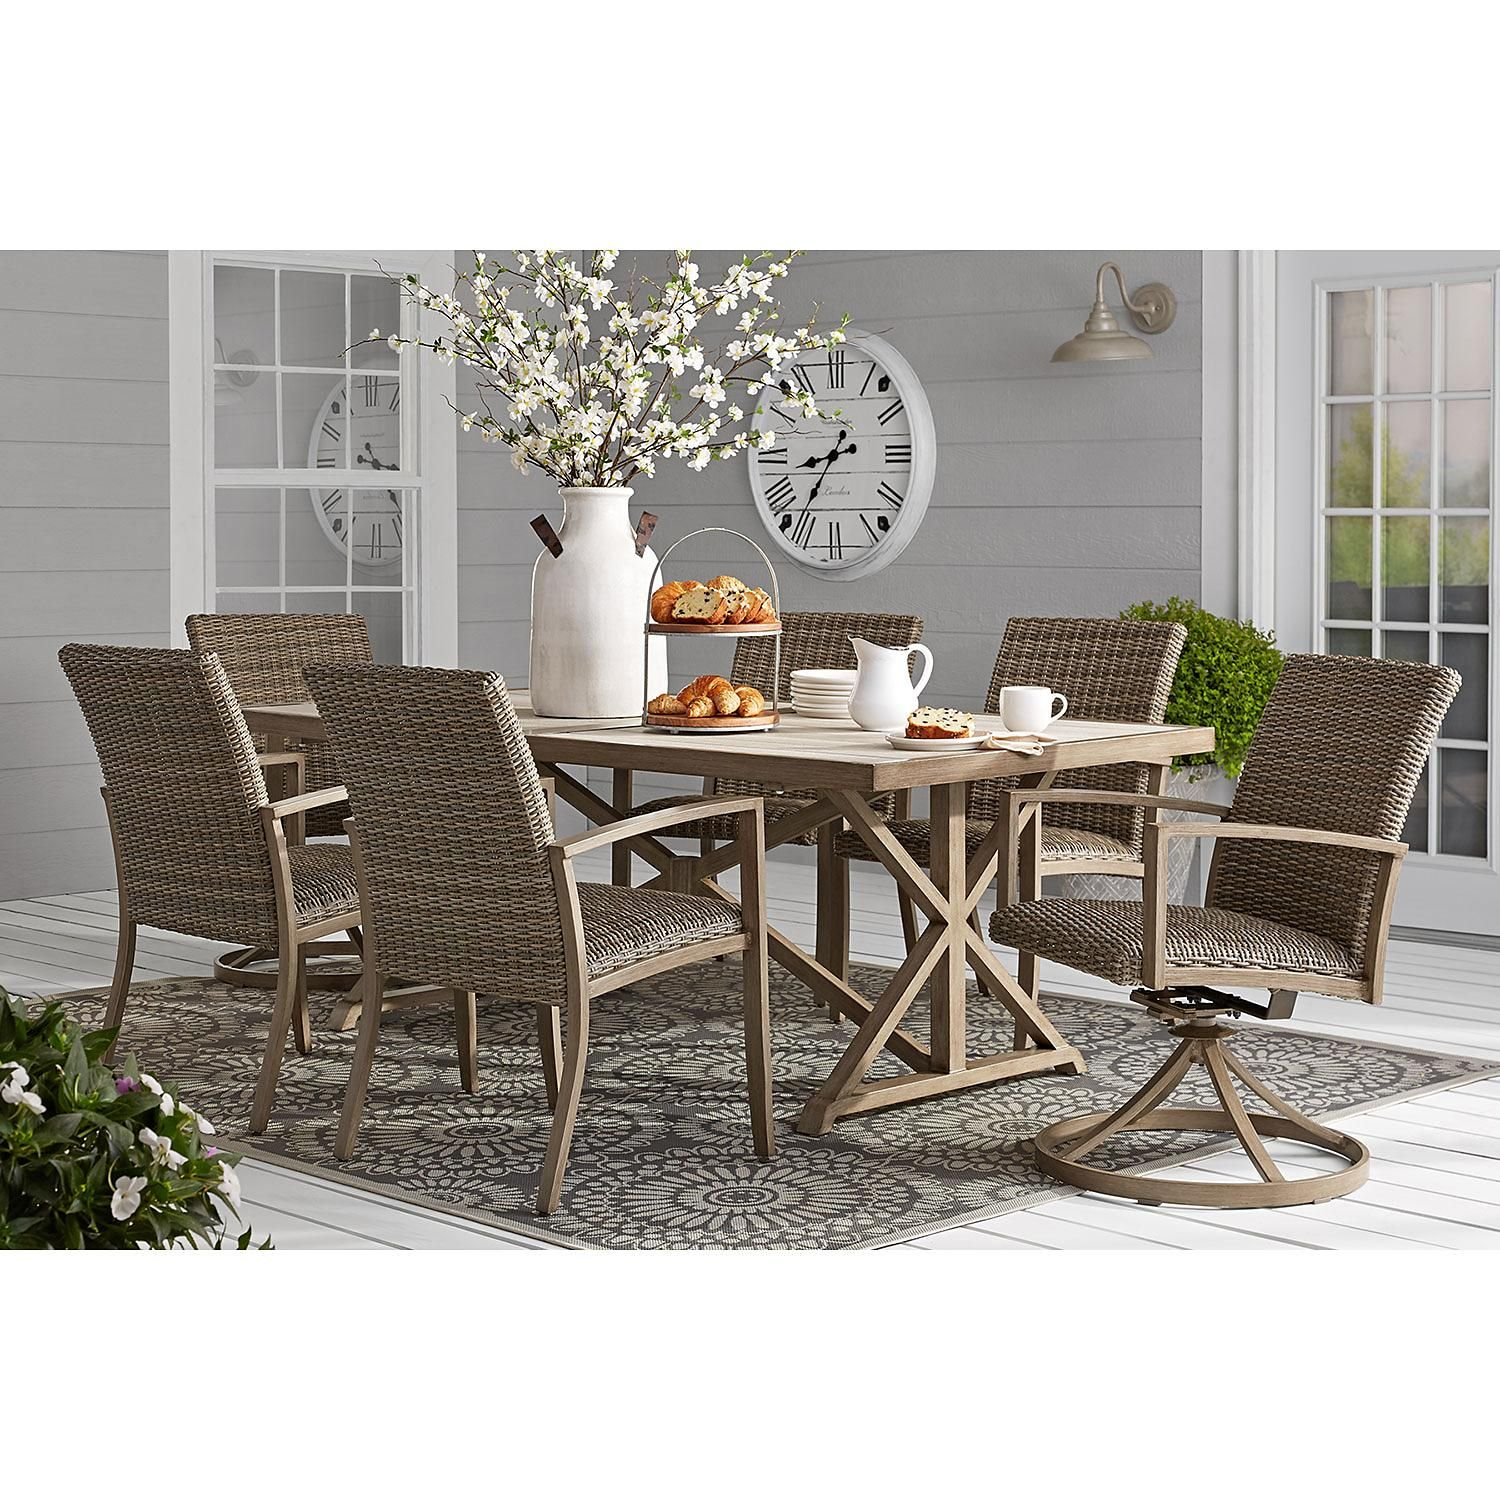 Member S Mark Harbor Hill 7 Piece Cushion Dining Set In 2020